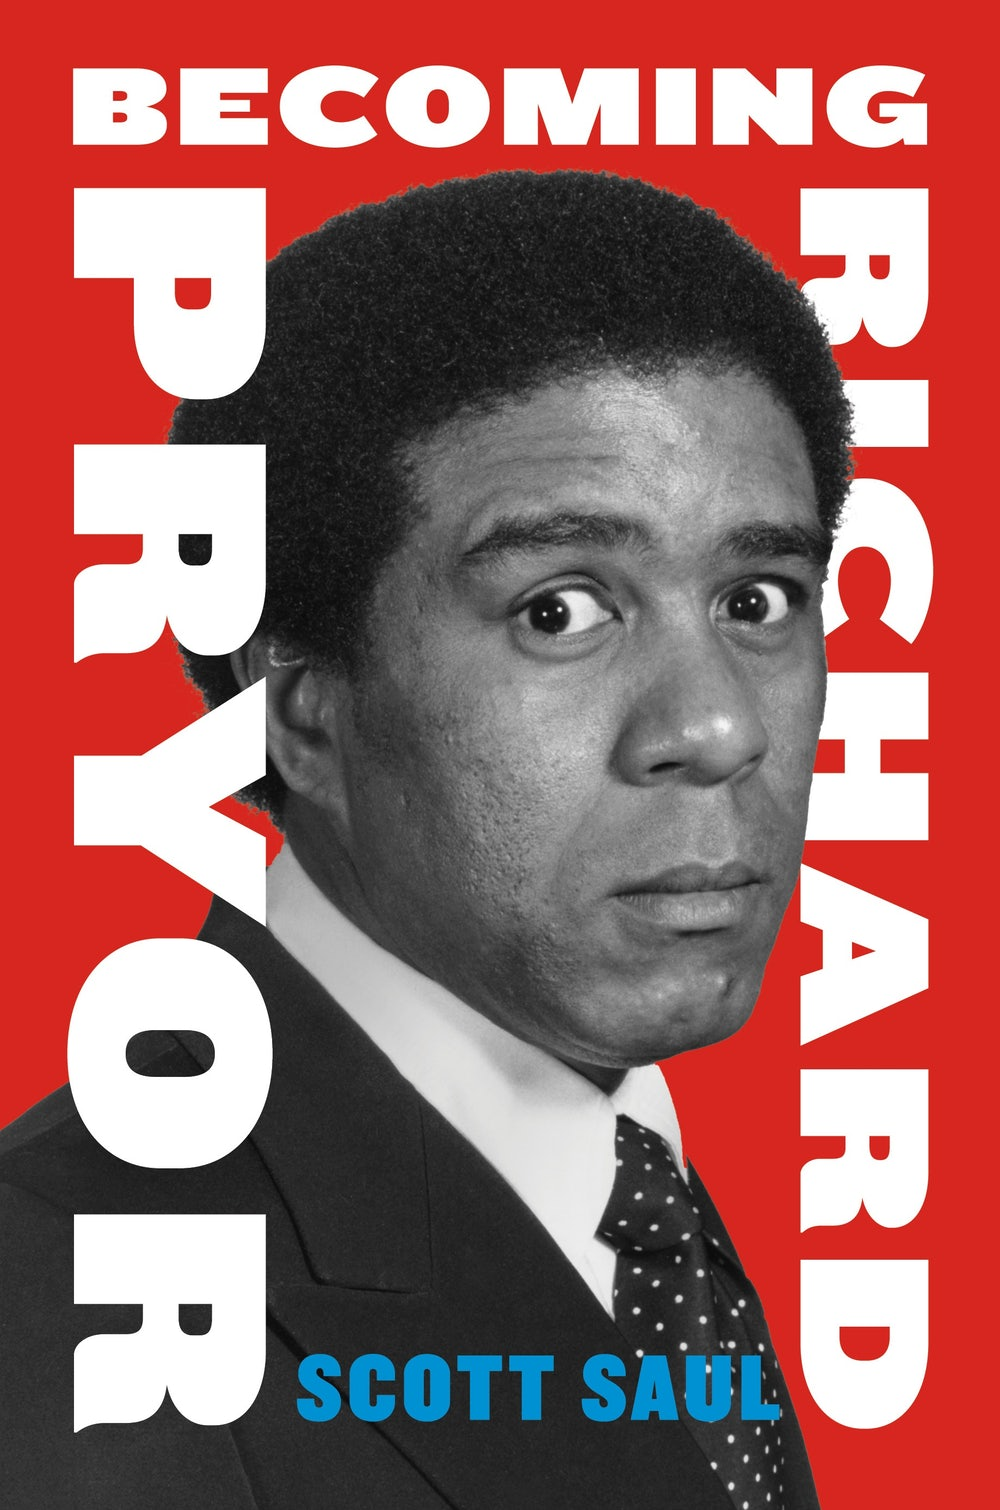 Richard Pryor Taught Us Offensive Comedy Can Liberate The New Republic